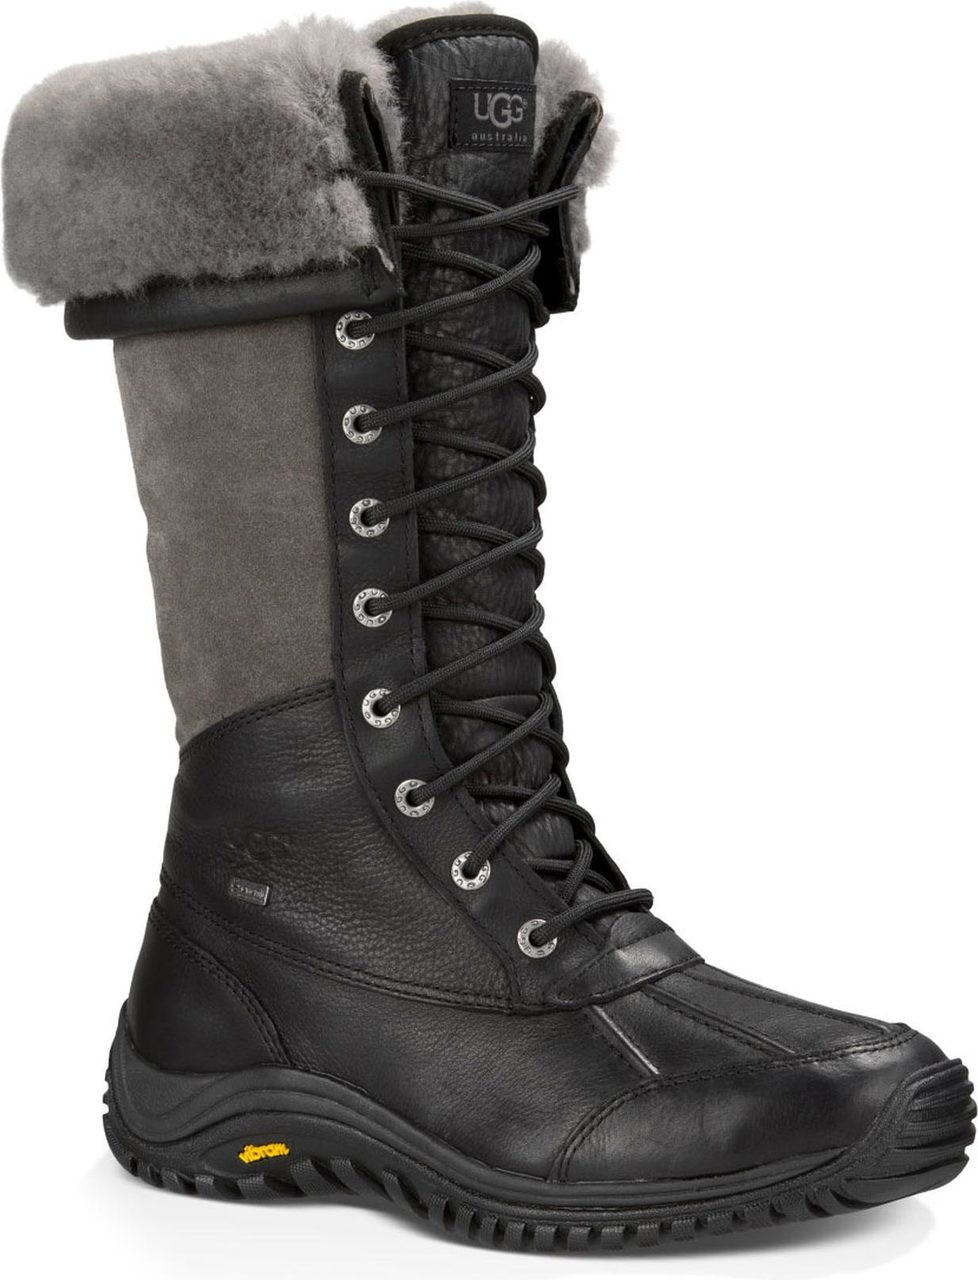 ... Boots; UGG Women's Adirondack Tall. Black